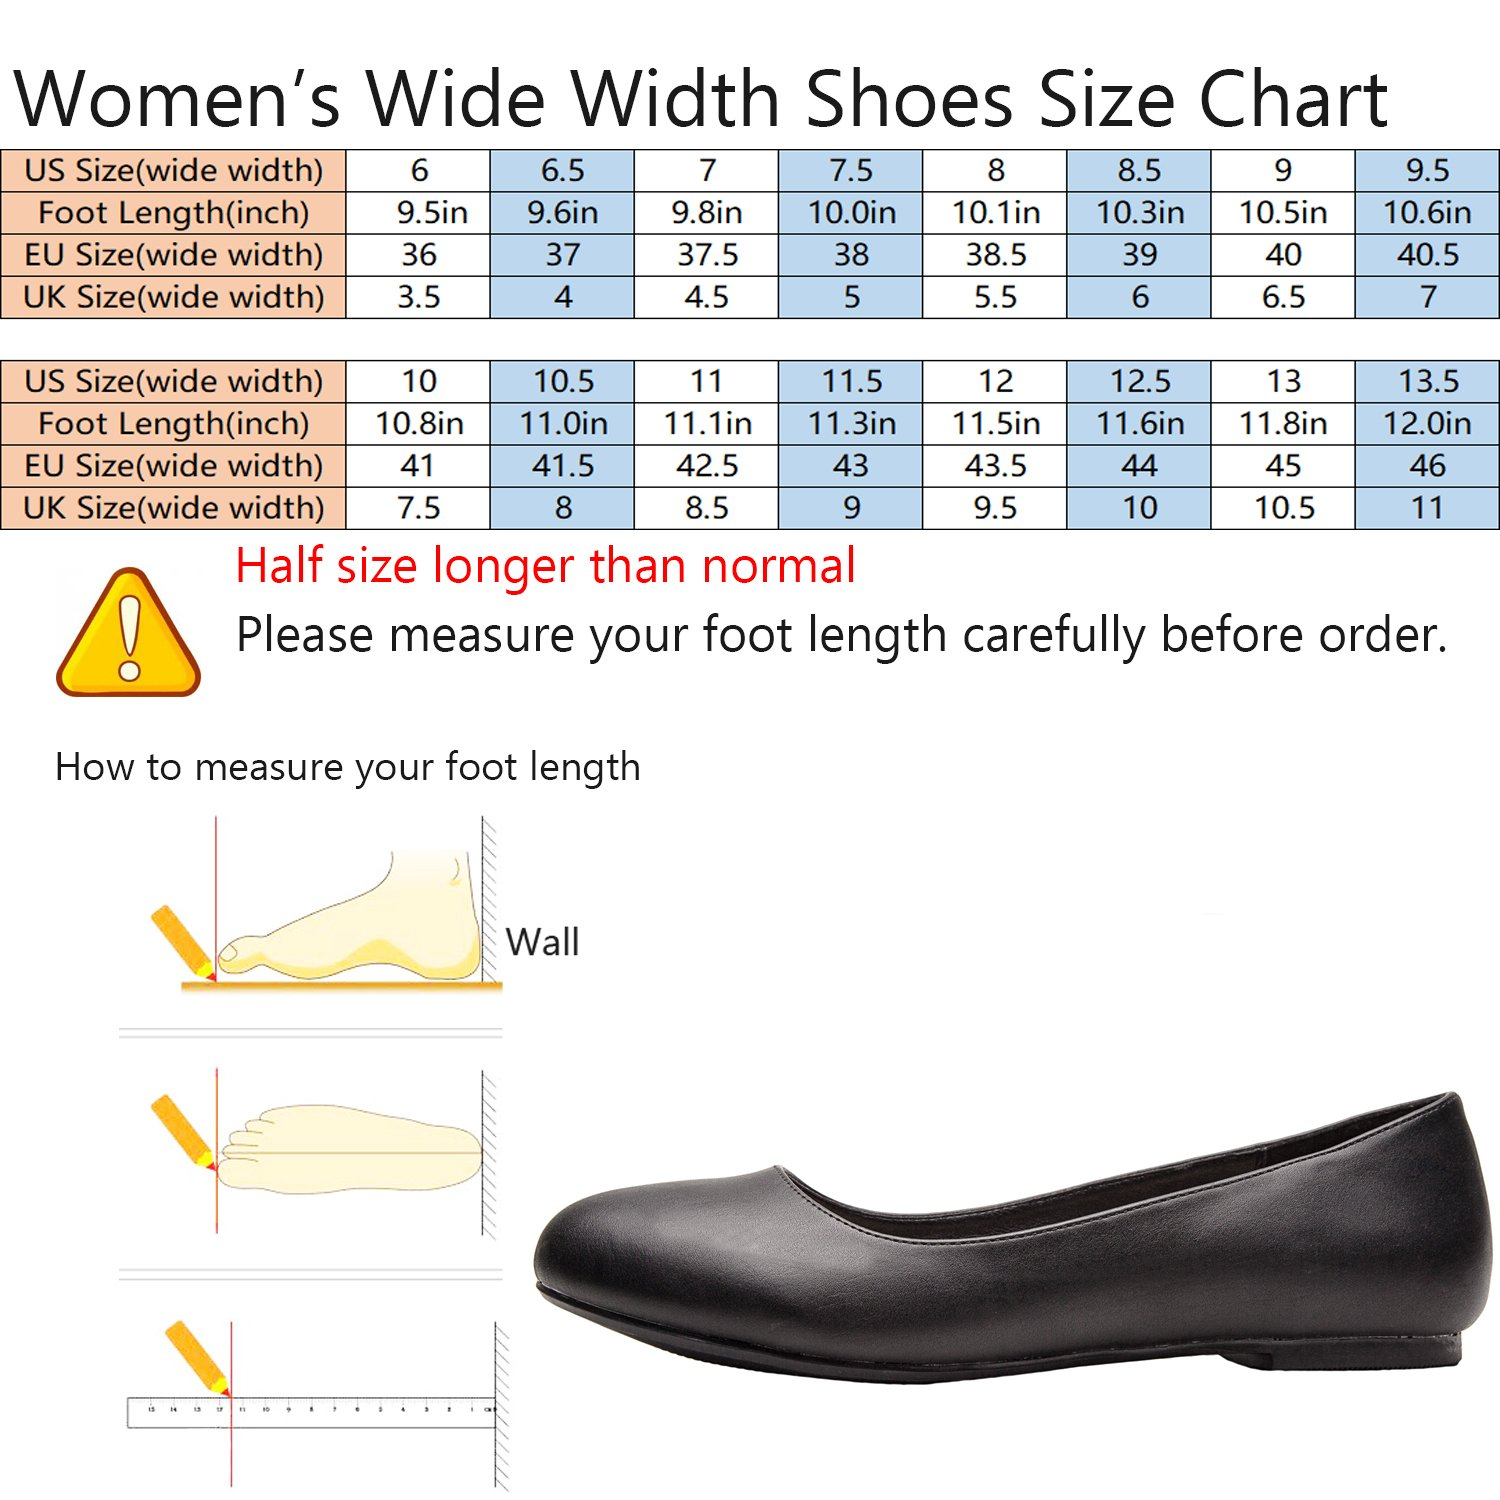 Luoika Women's Wide Width Flat Shoes - Comfortable Slip On Round Toe Ballet Flats. (180110 Black PU,9WW) by Luoika (Image #2)